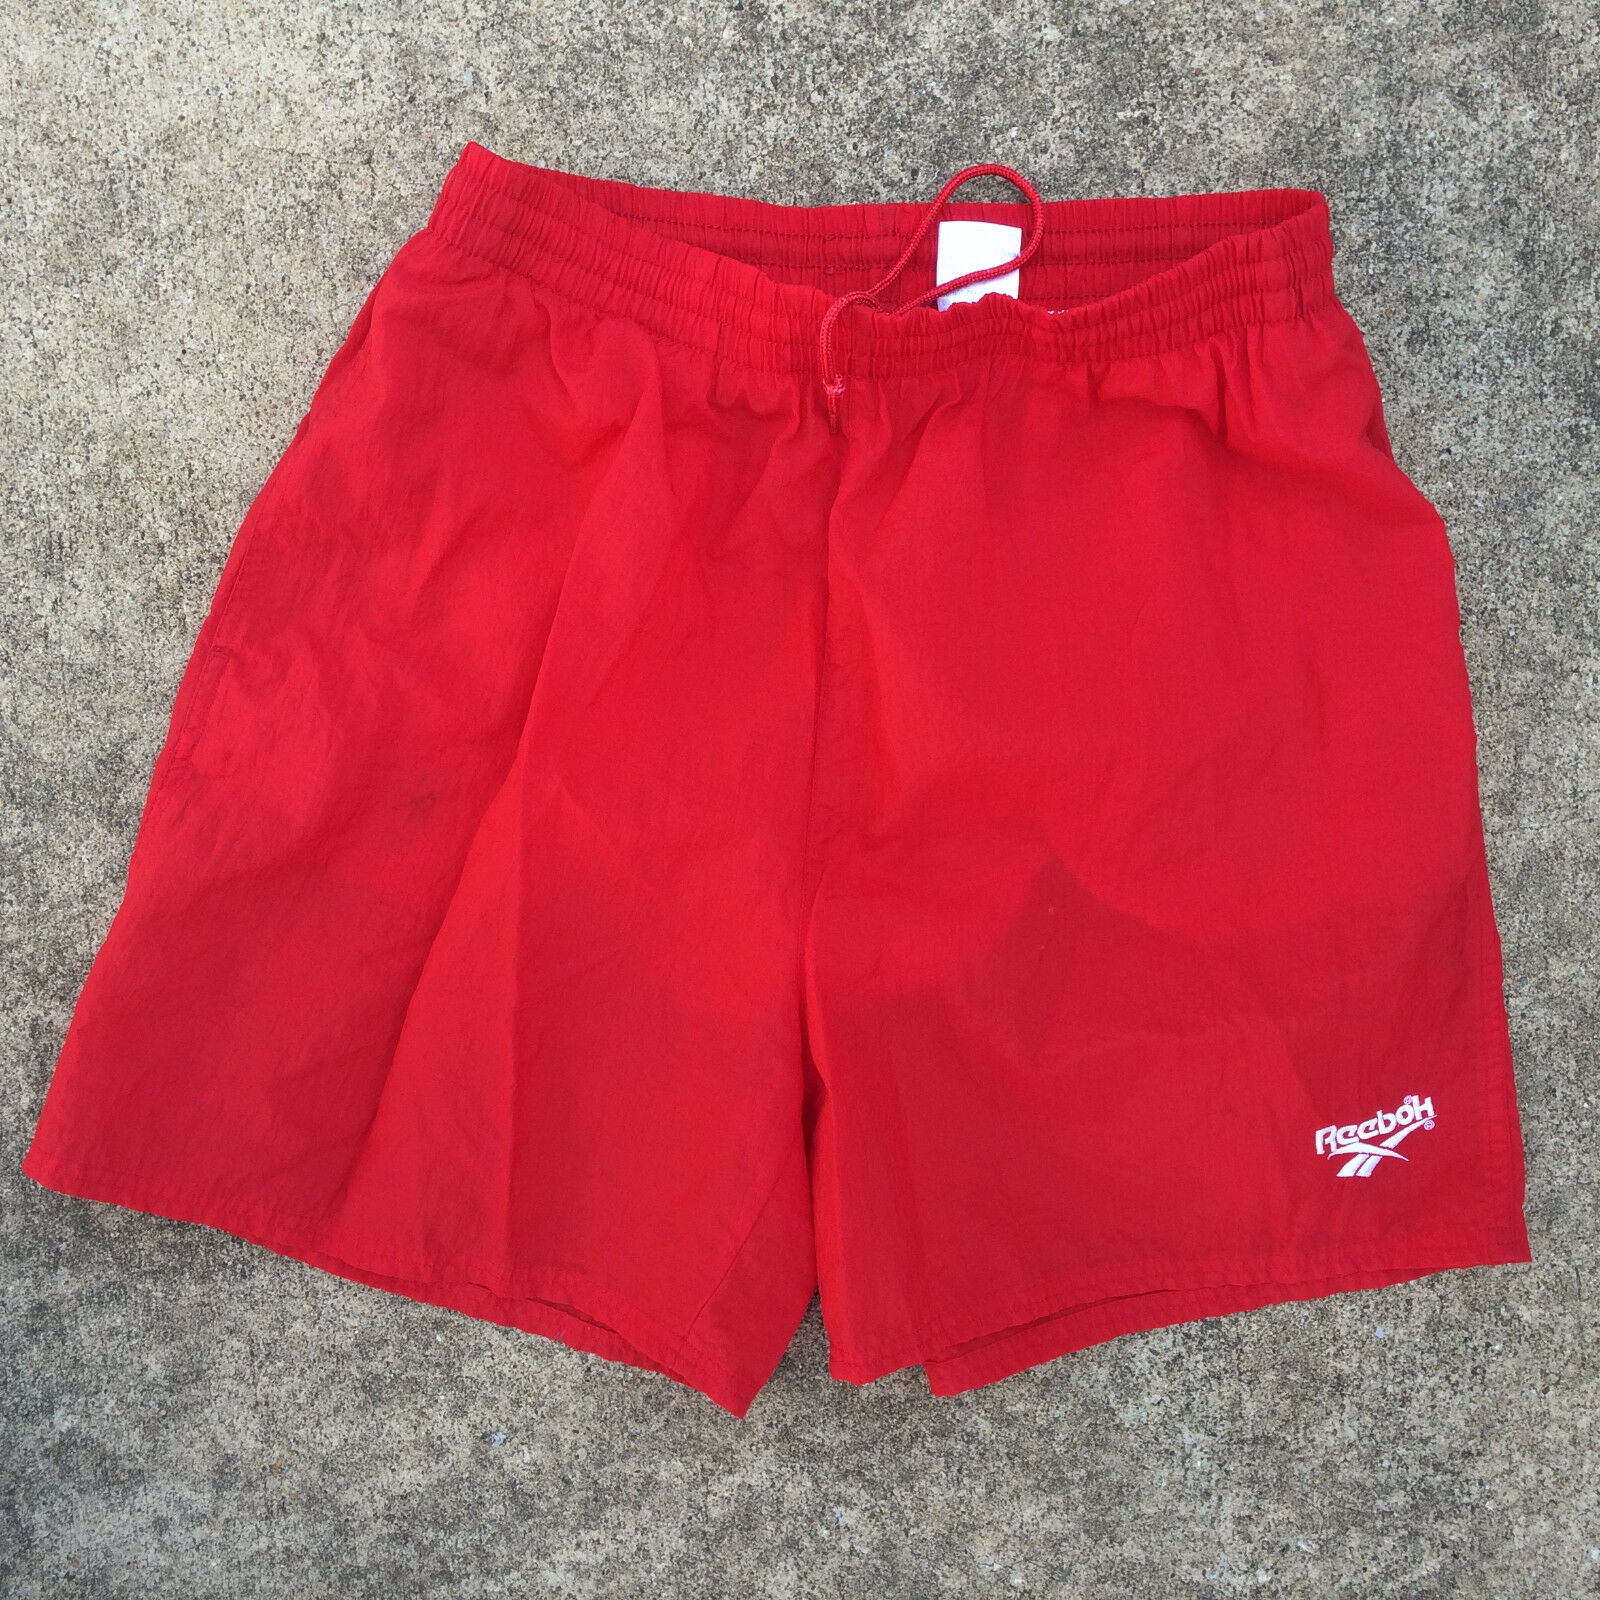 fcf937581851 Vintage 80s 90s Grunge Reebok Swim Surf Board Trunks color Red M ...